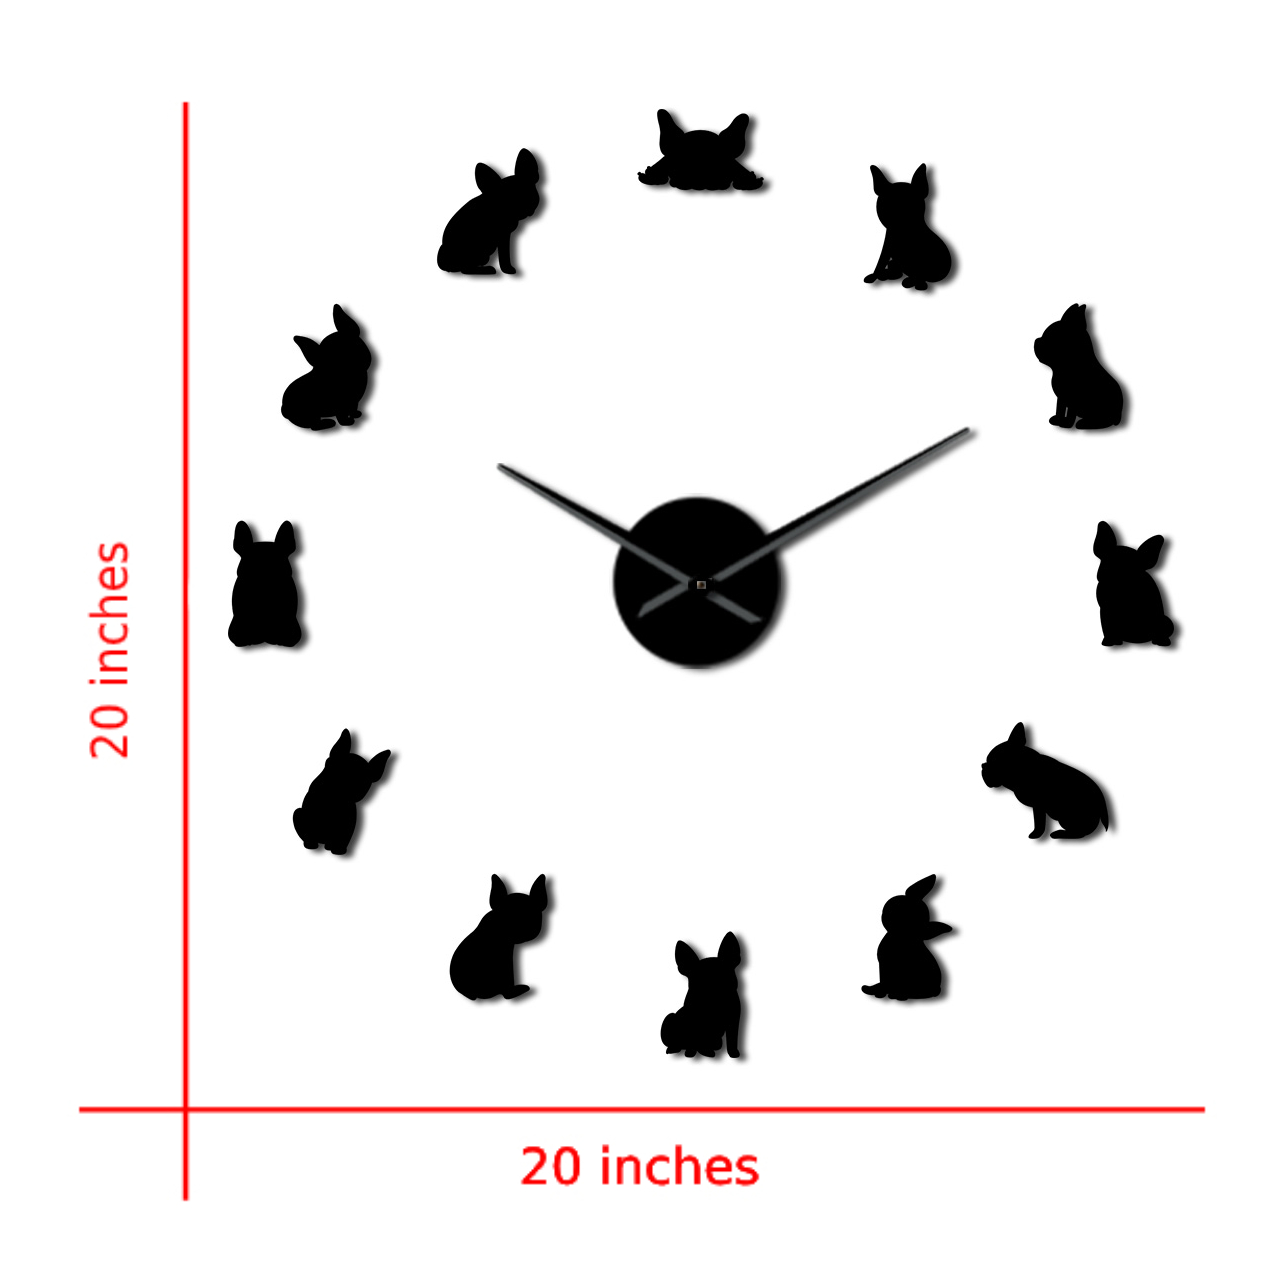 French Bulldog Diy Giant Wall Clock Domestic Dog Large Modern Wall Clock Frenchie Wall Clock Dod Breeds Dog Lovers Gift A028 Buy Online At Best Prices In Pakistan Daraz Pk